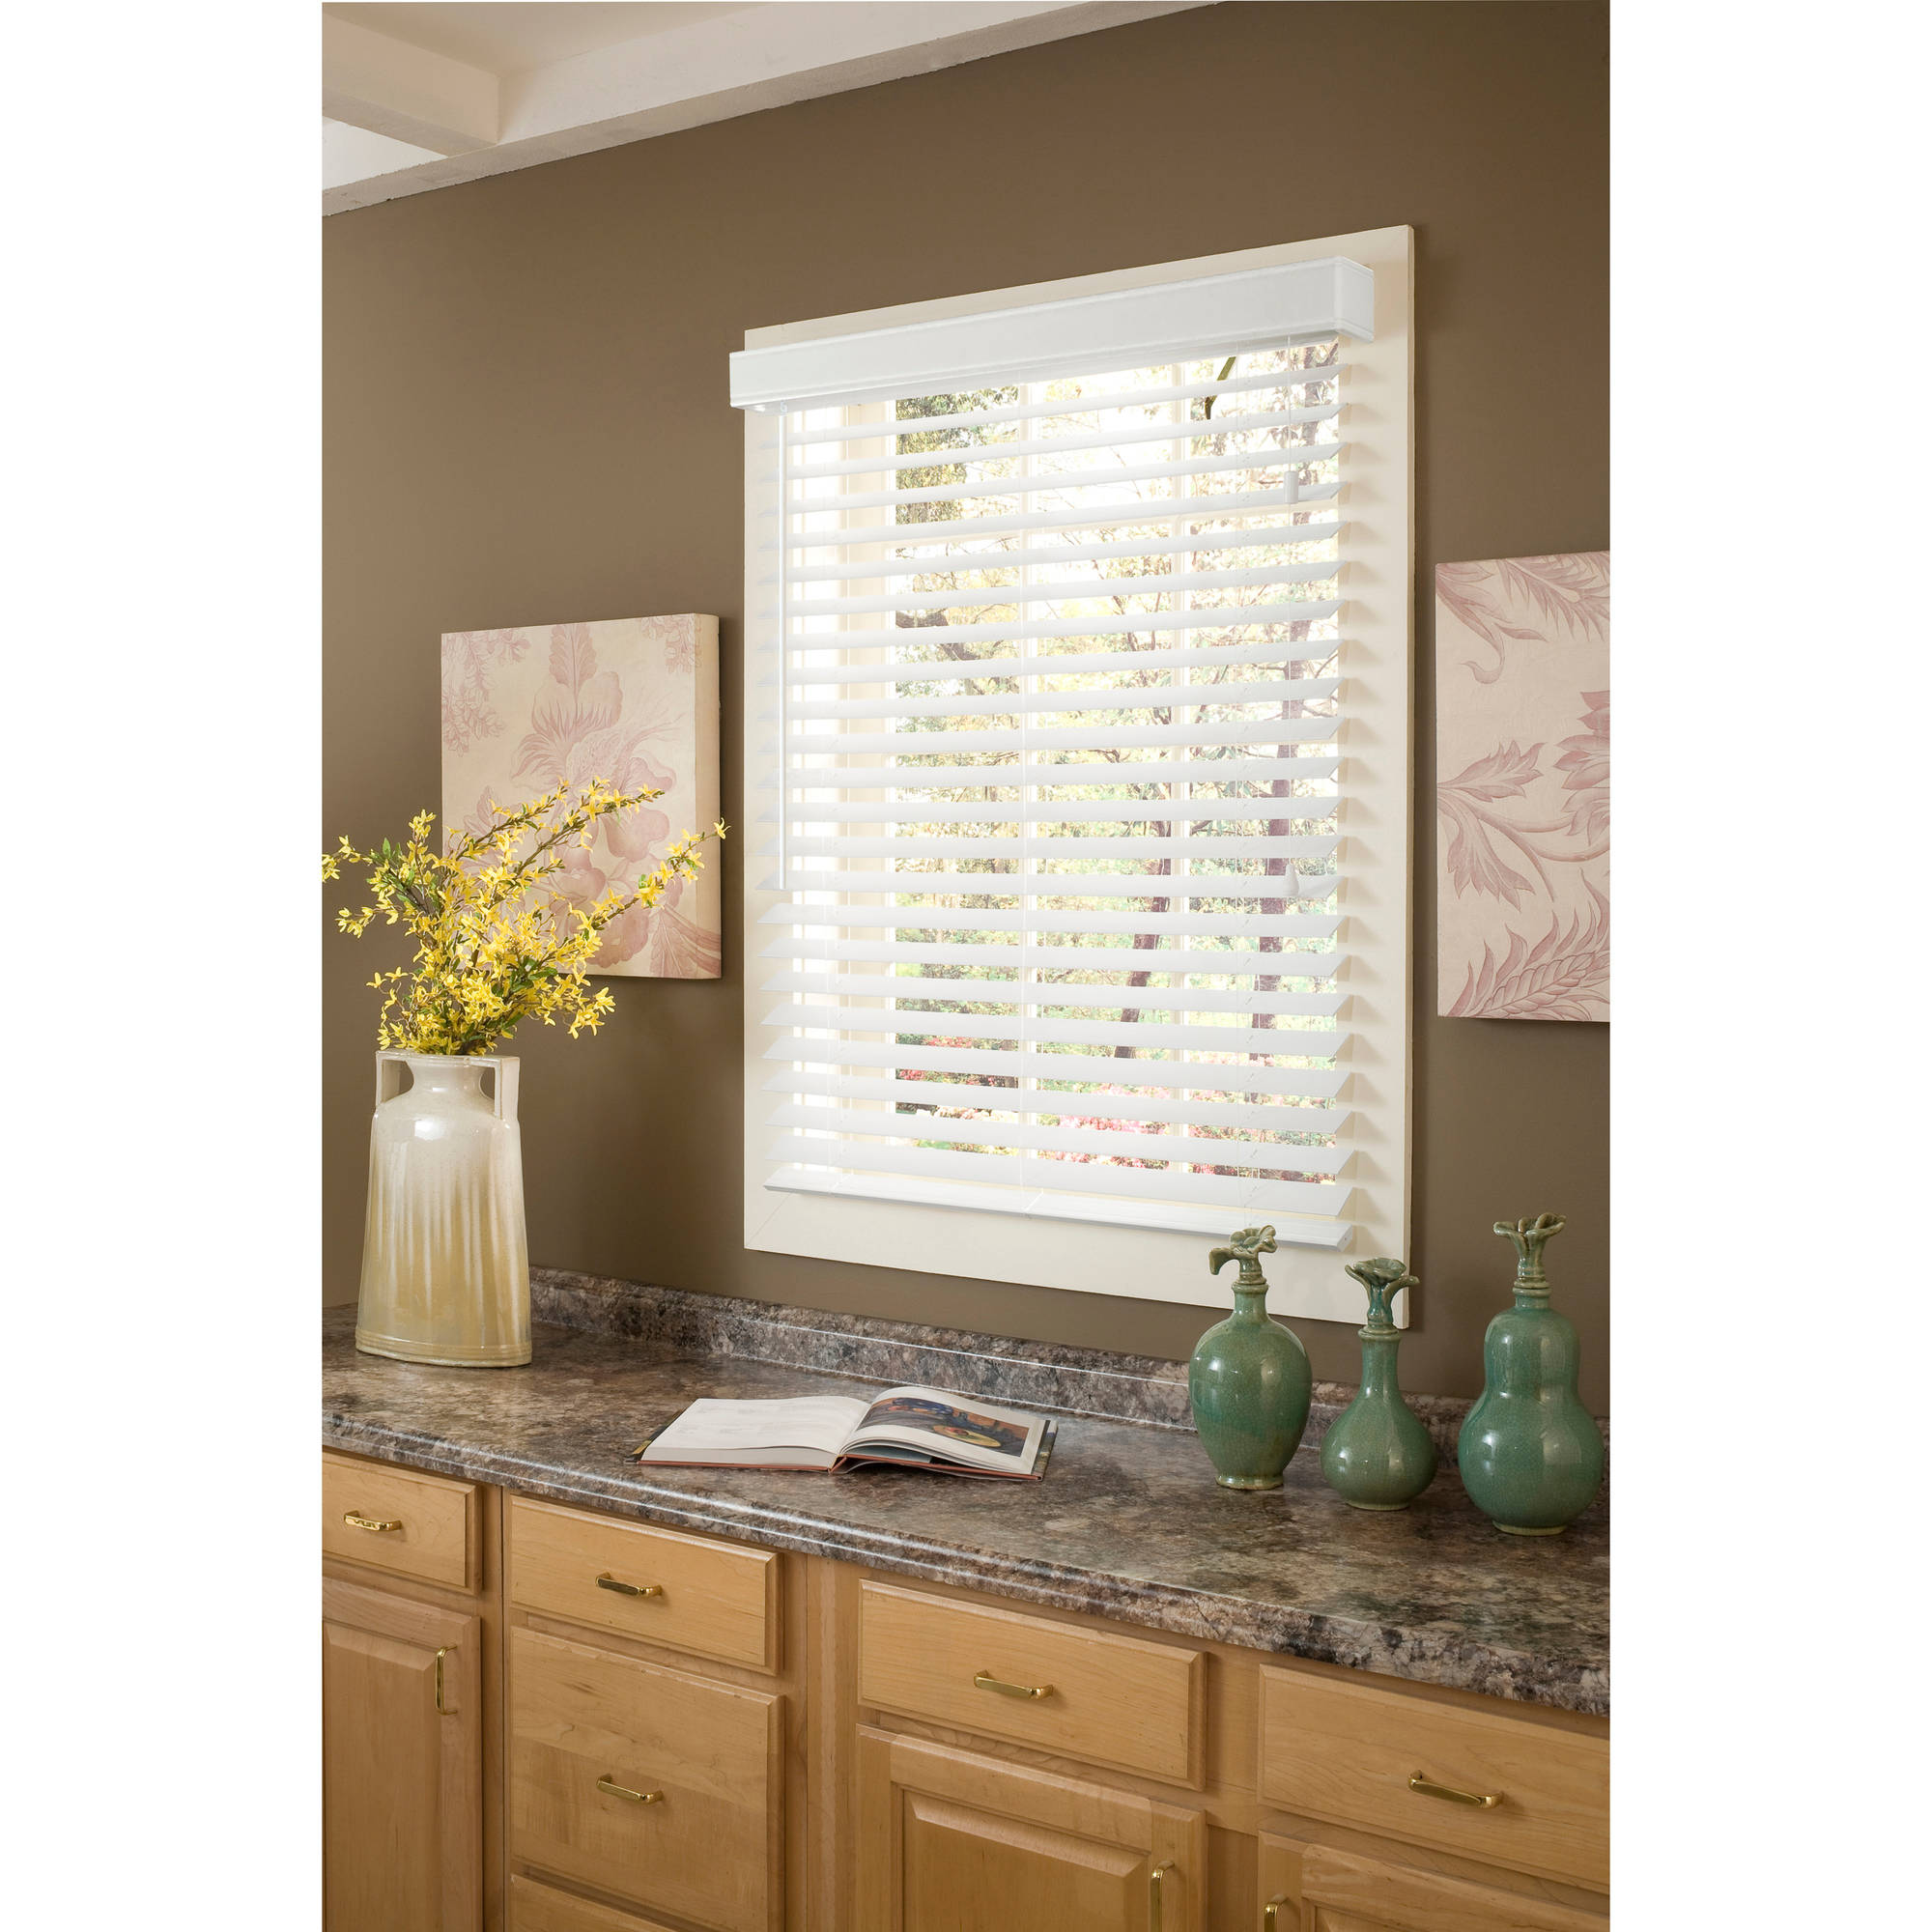 Richfield Studios 2'' Faux Wood Blinds, White